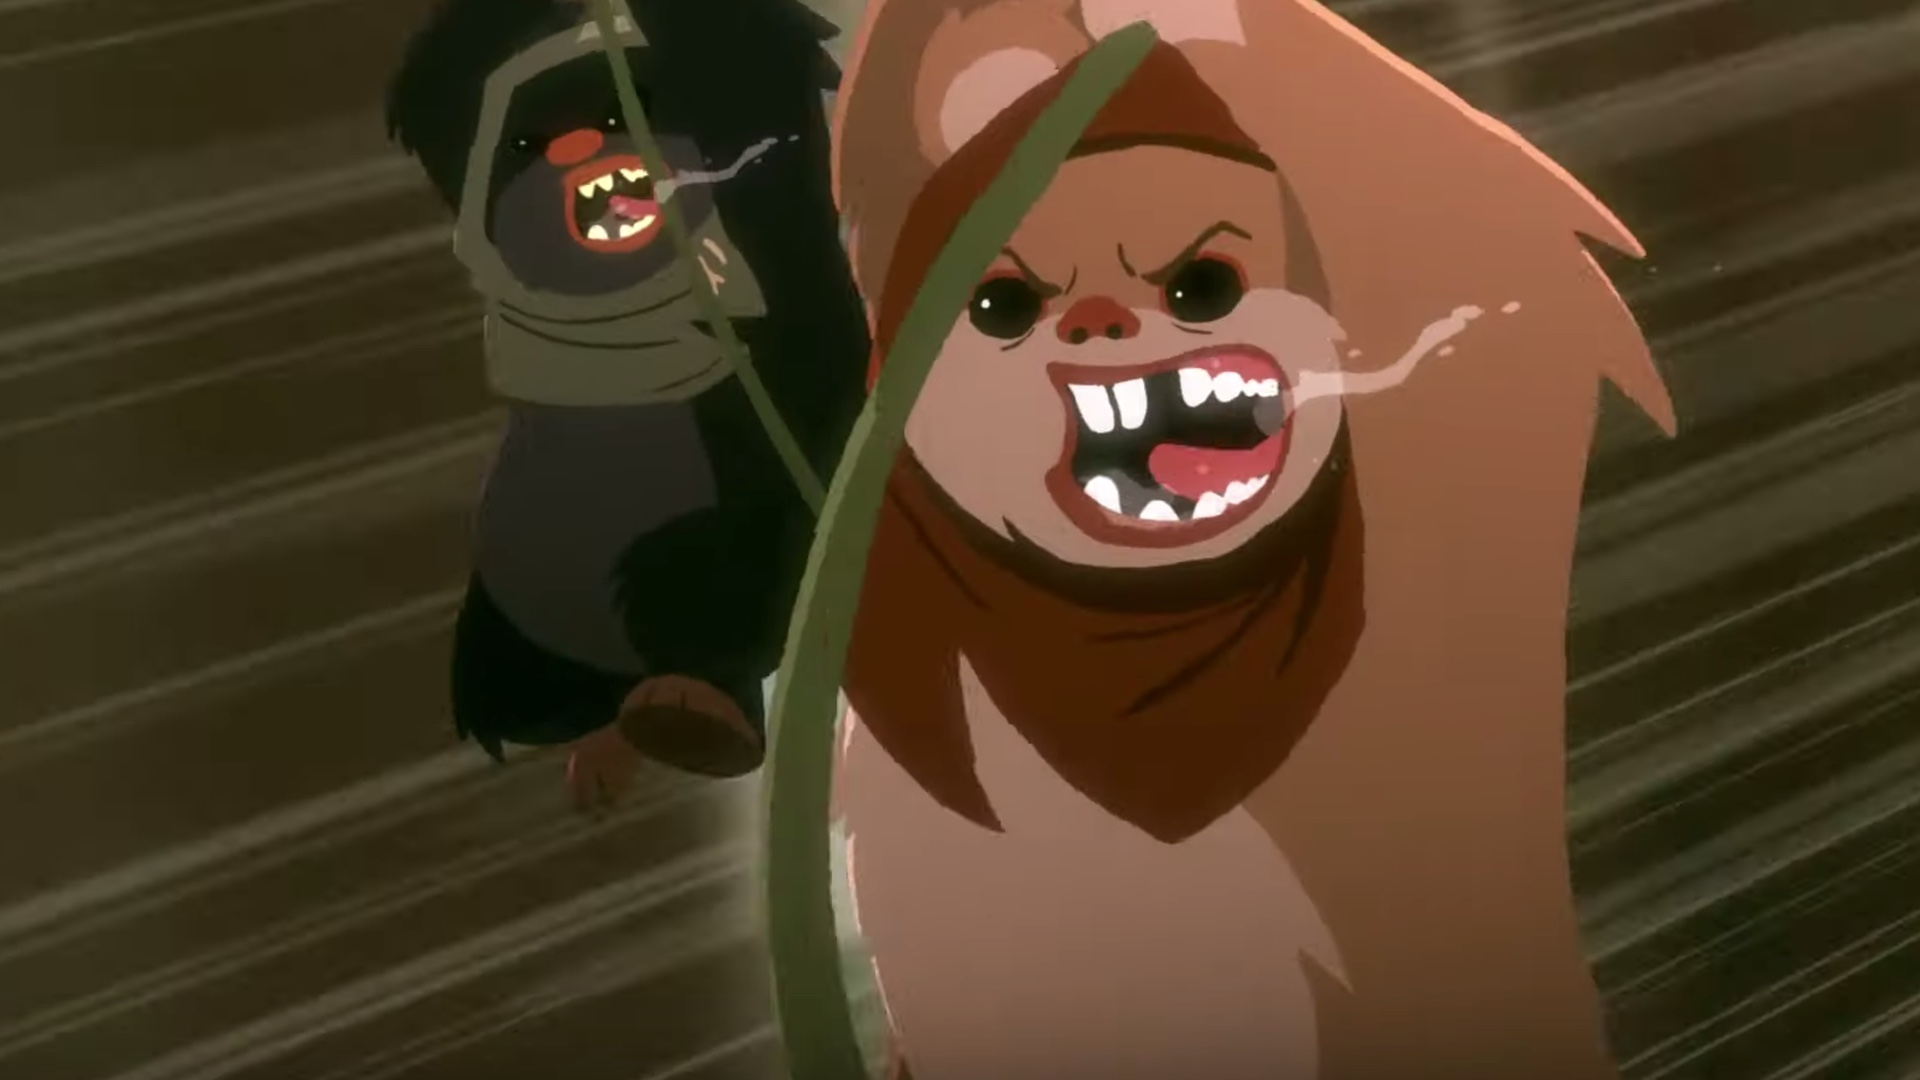 new-star-wars-galaxy-of-adventures-short-shows-ewoks-as-mighty-warriors-you-dont-want-to-mess-with-social.jpg